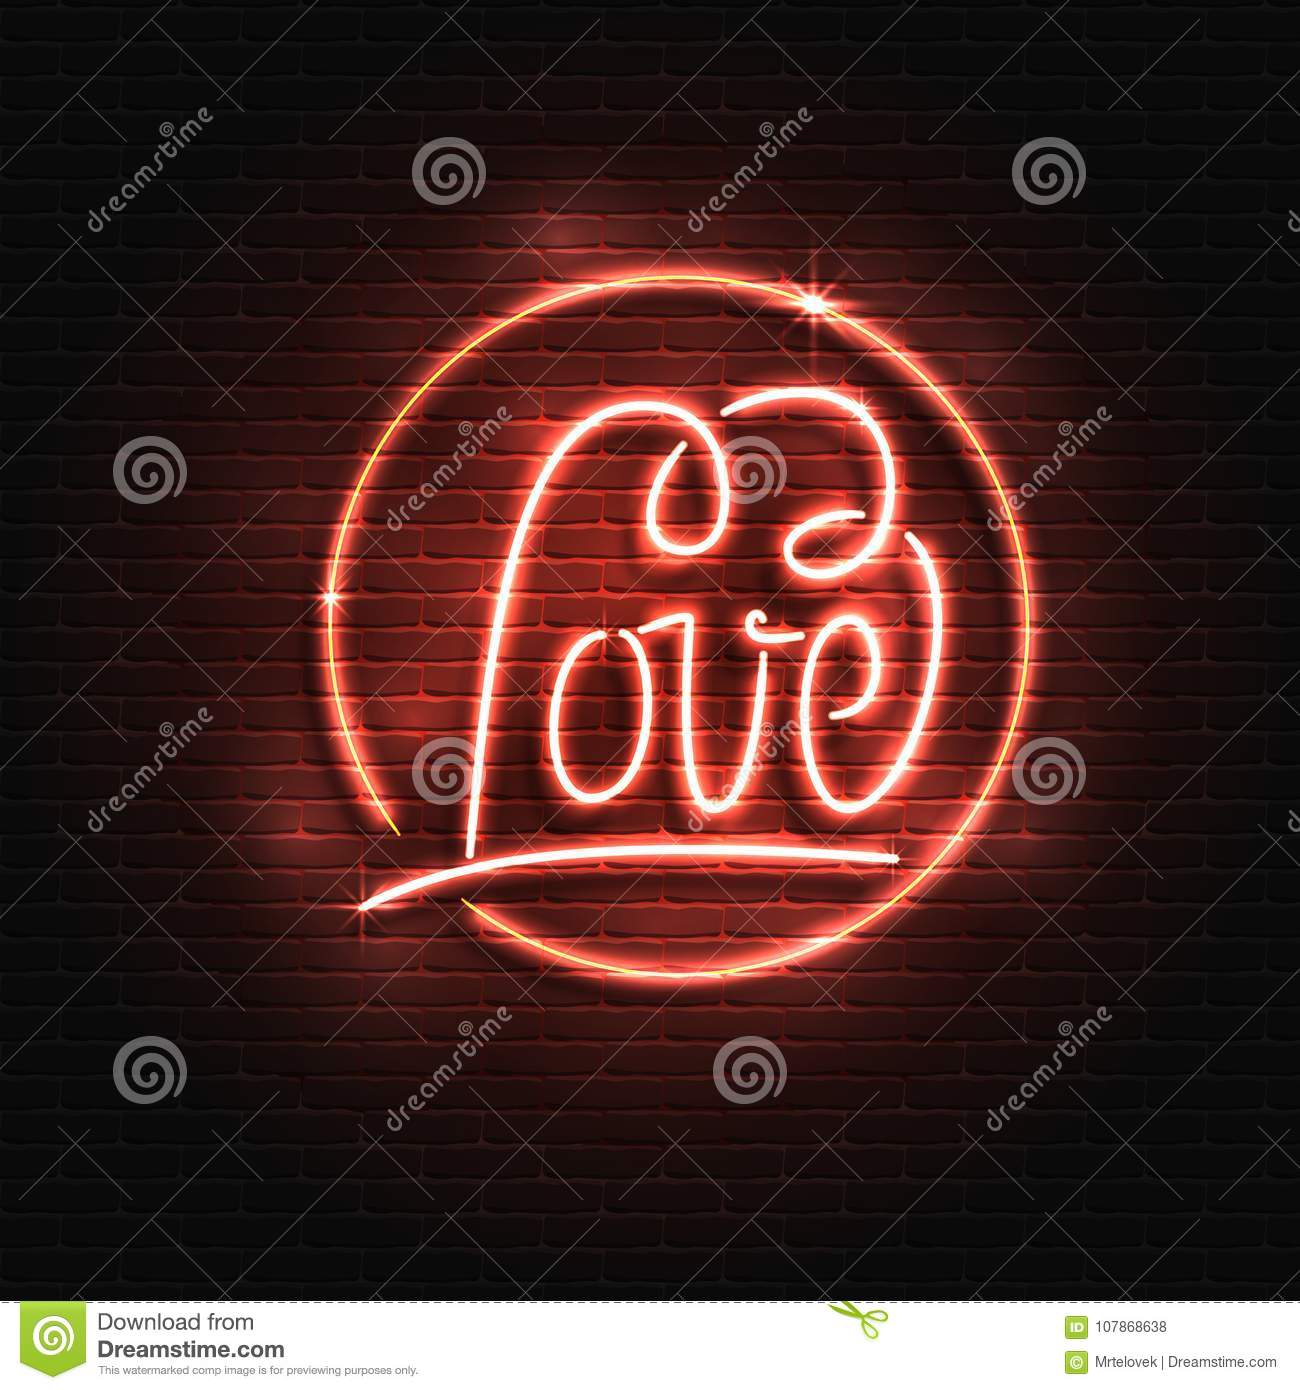 Neon sign love the word love on a brick wall background element neon sign love the word love on a brick wall background element for the st valentines day design can be used for isolated card buycottarizona Choice Image